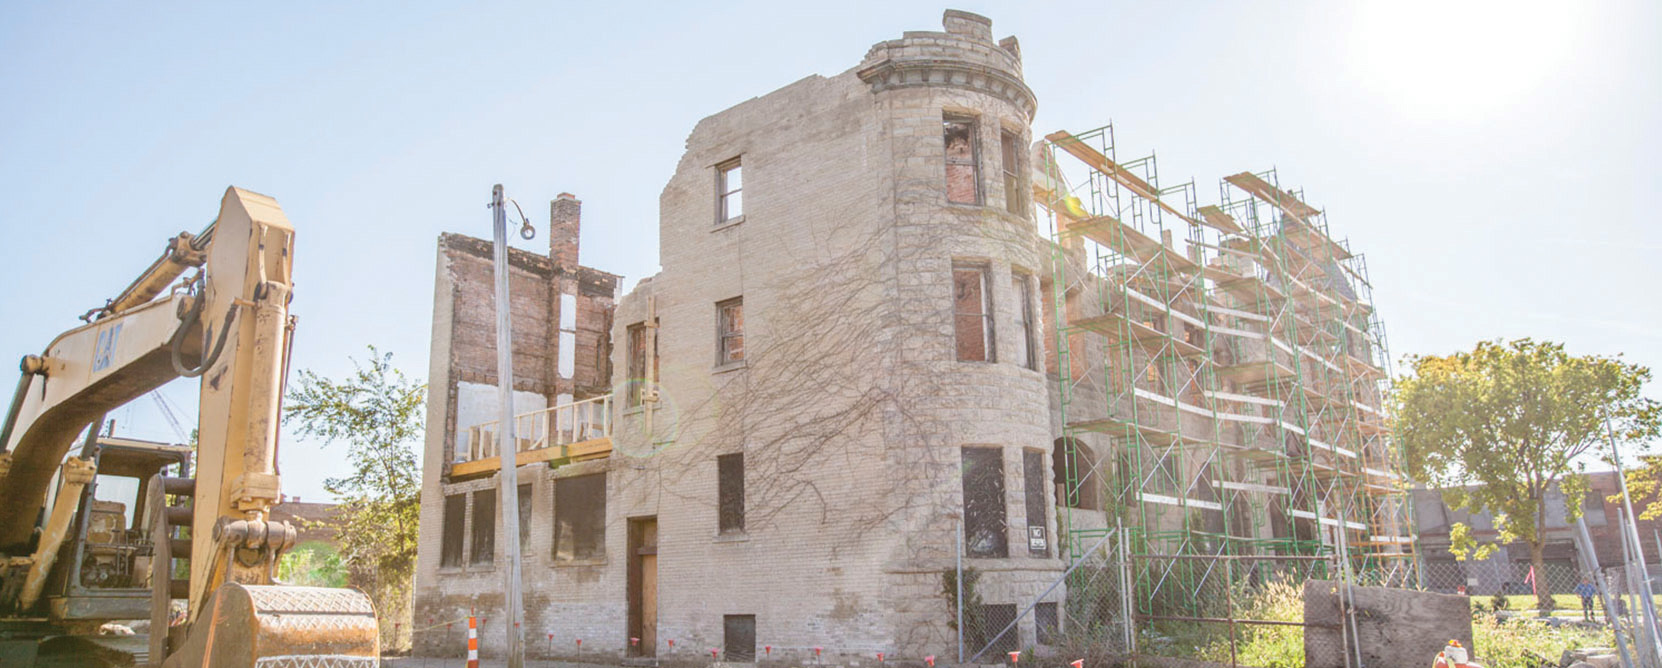 Construction of the James Scott House in Detroit.